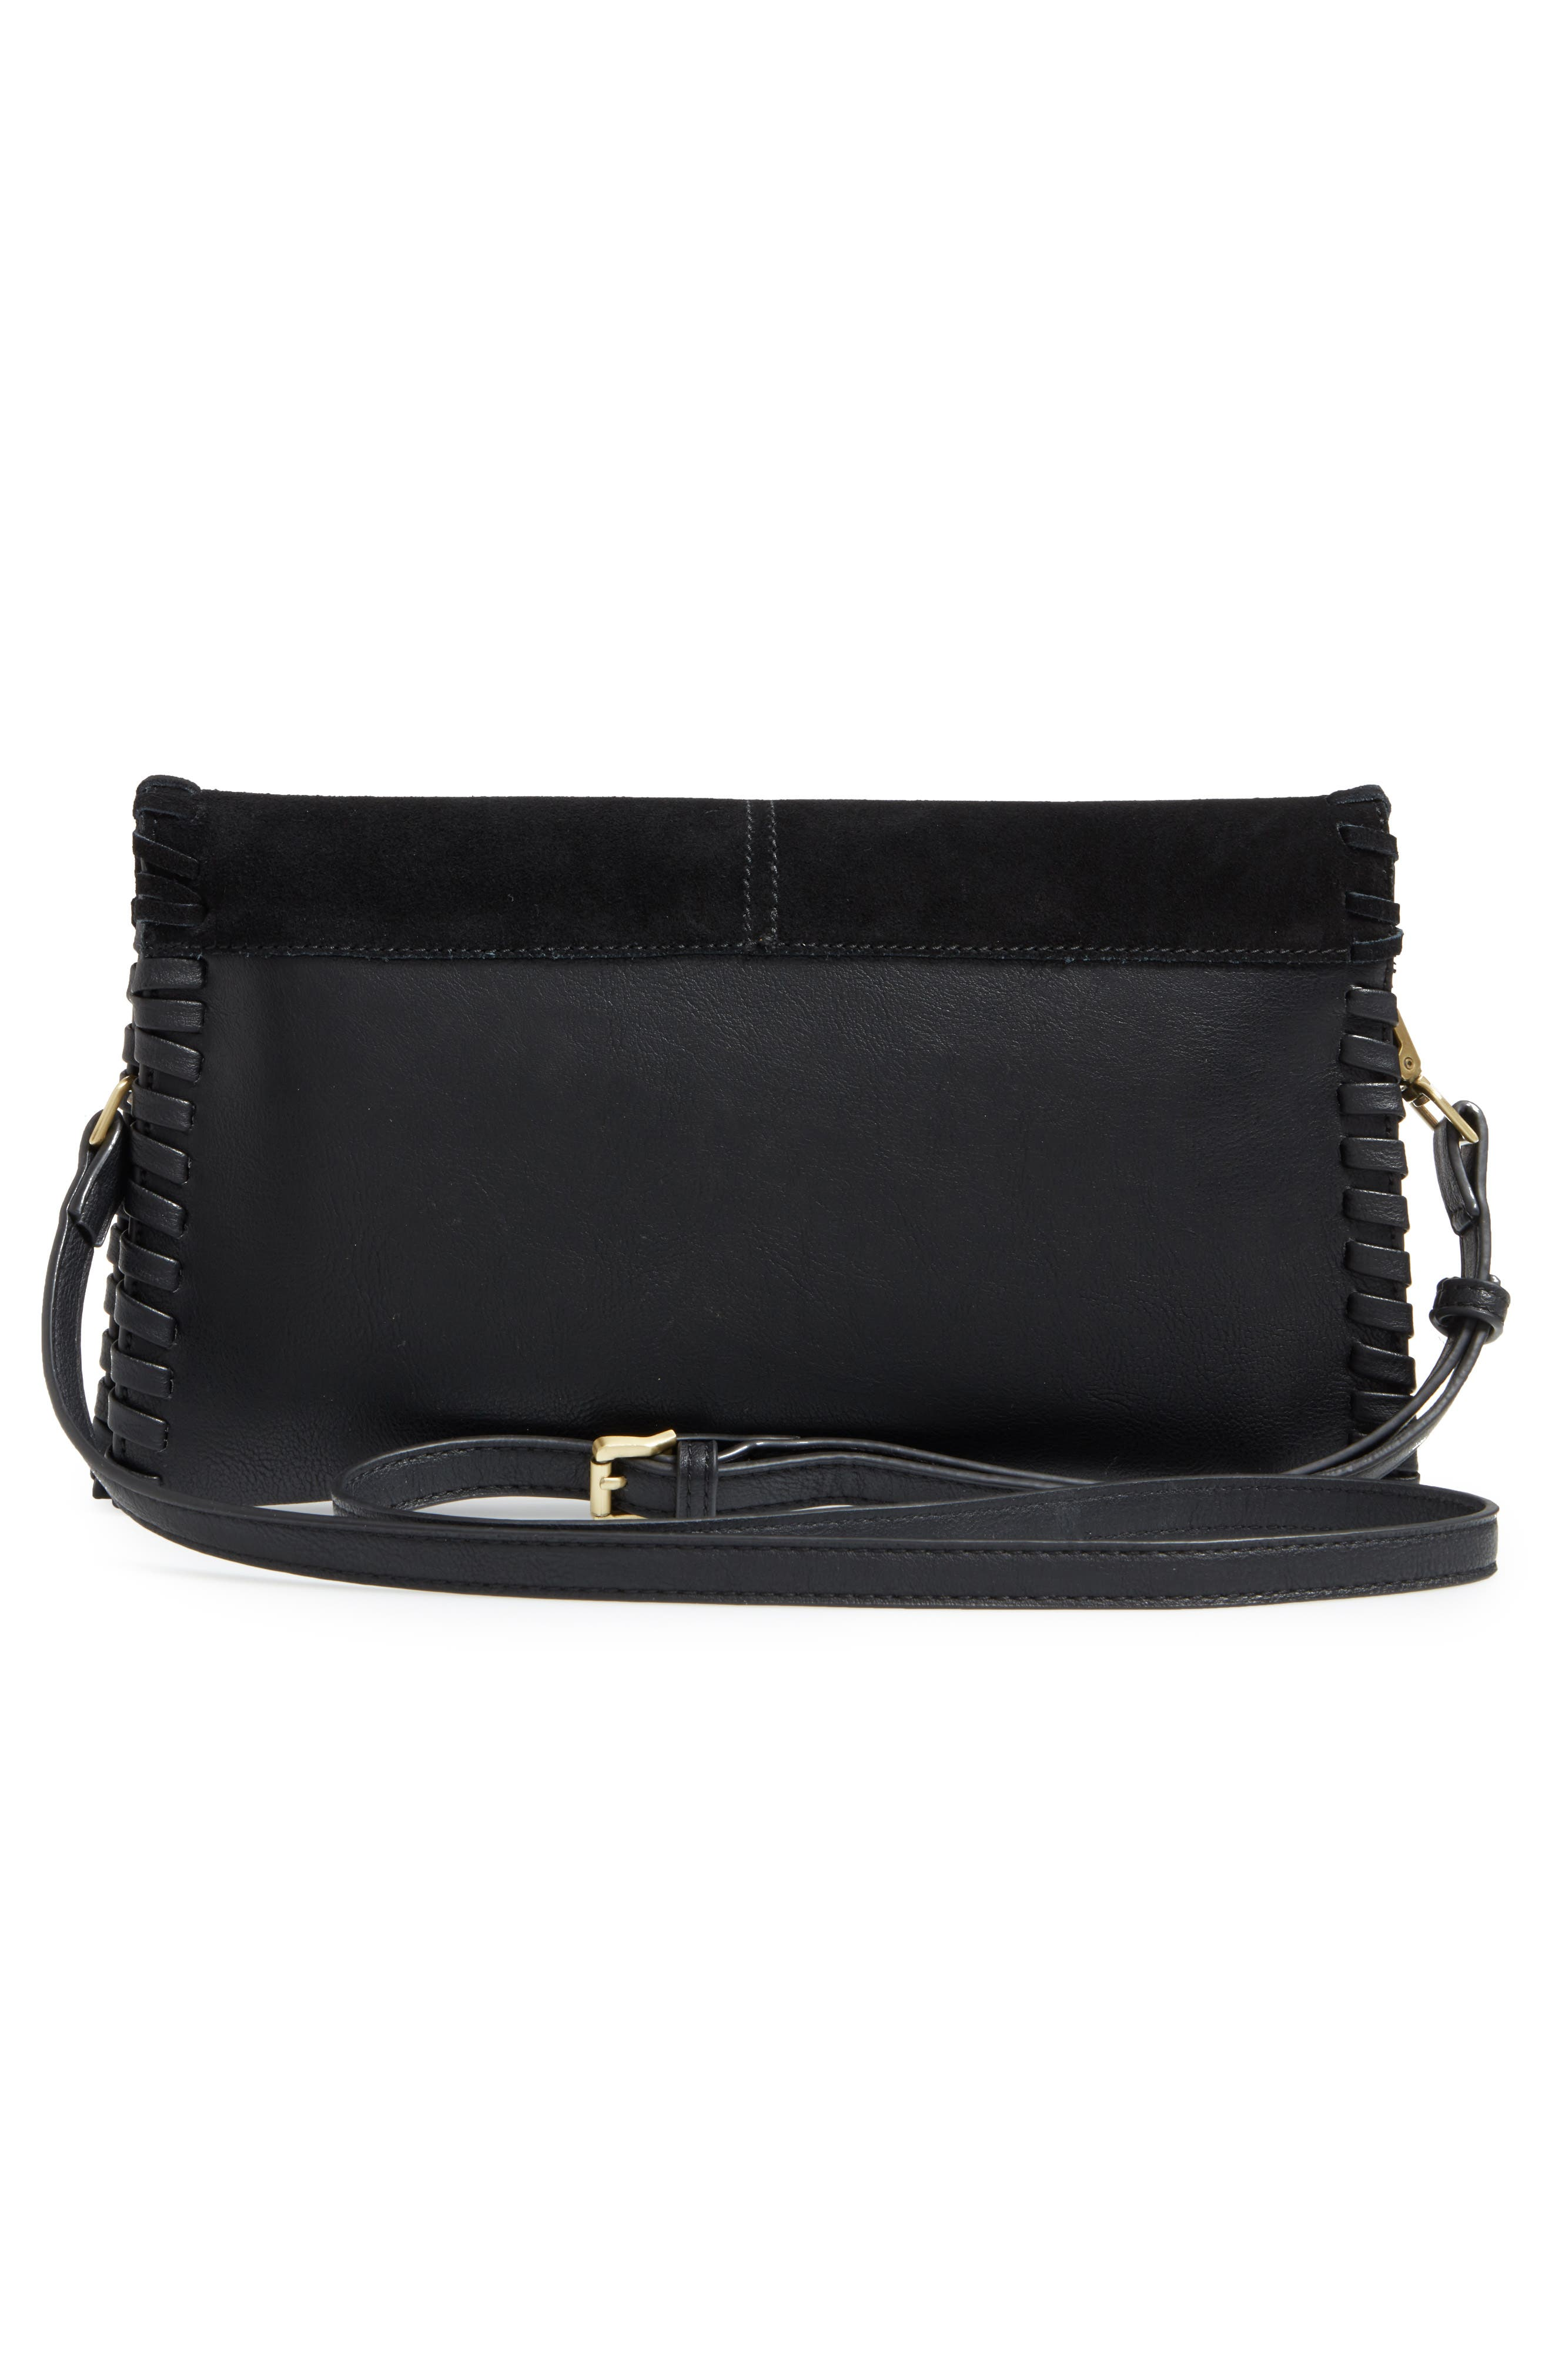 SOLE SOCIETY,                             Waverly Whipstitch Clutch,                             Alternate thumbnail 3, color,                             001